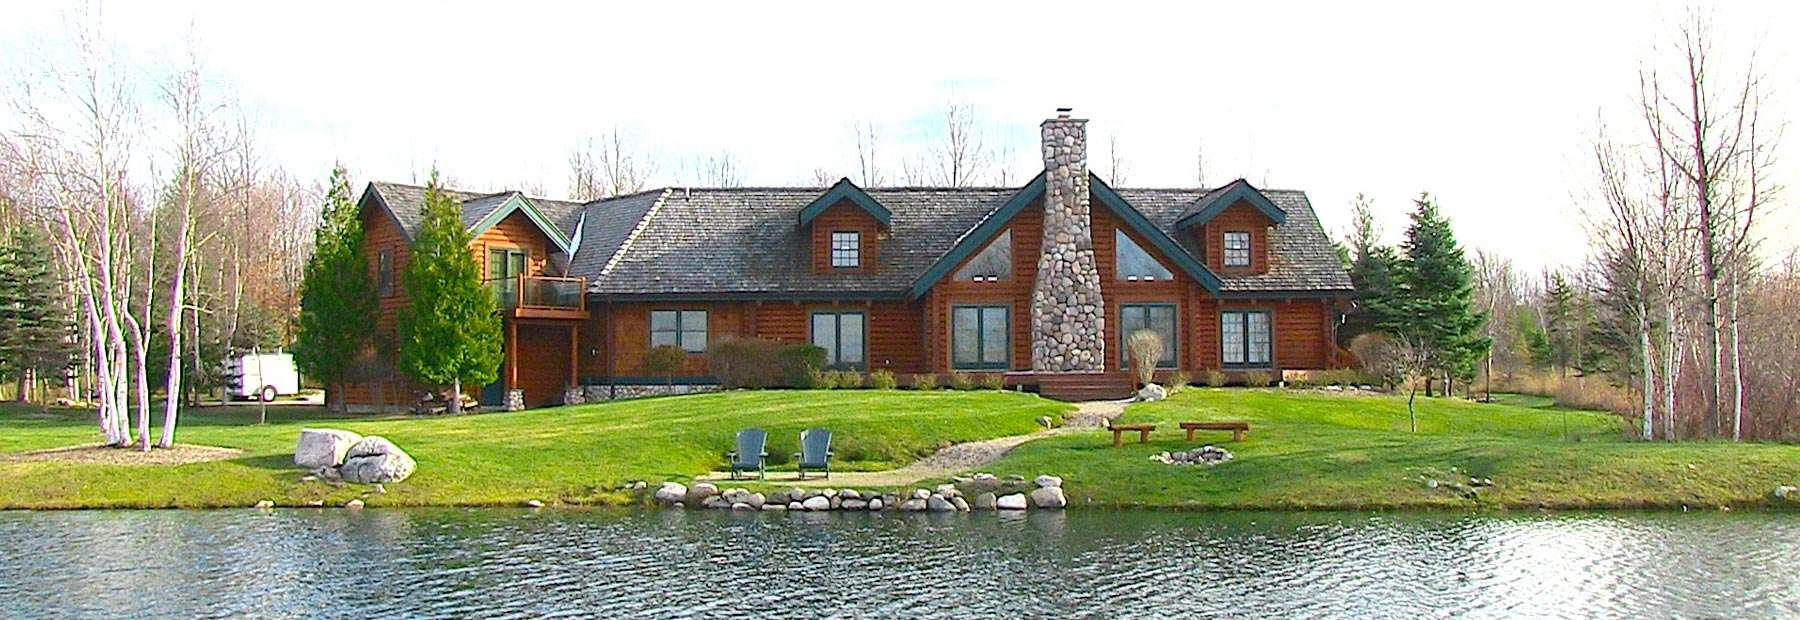 Charlevoix Log House